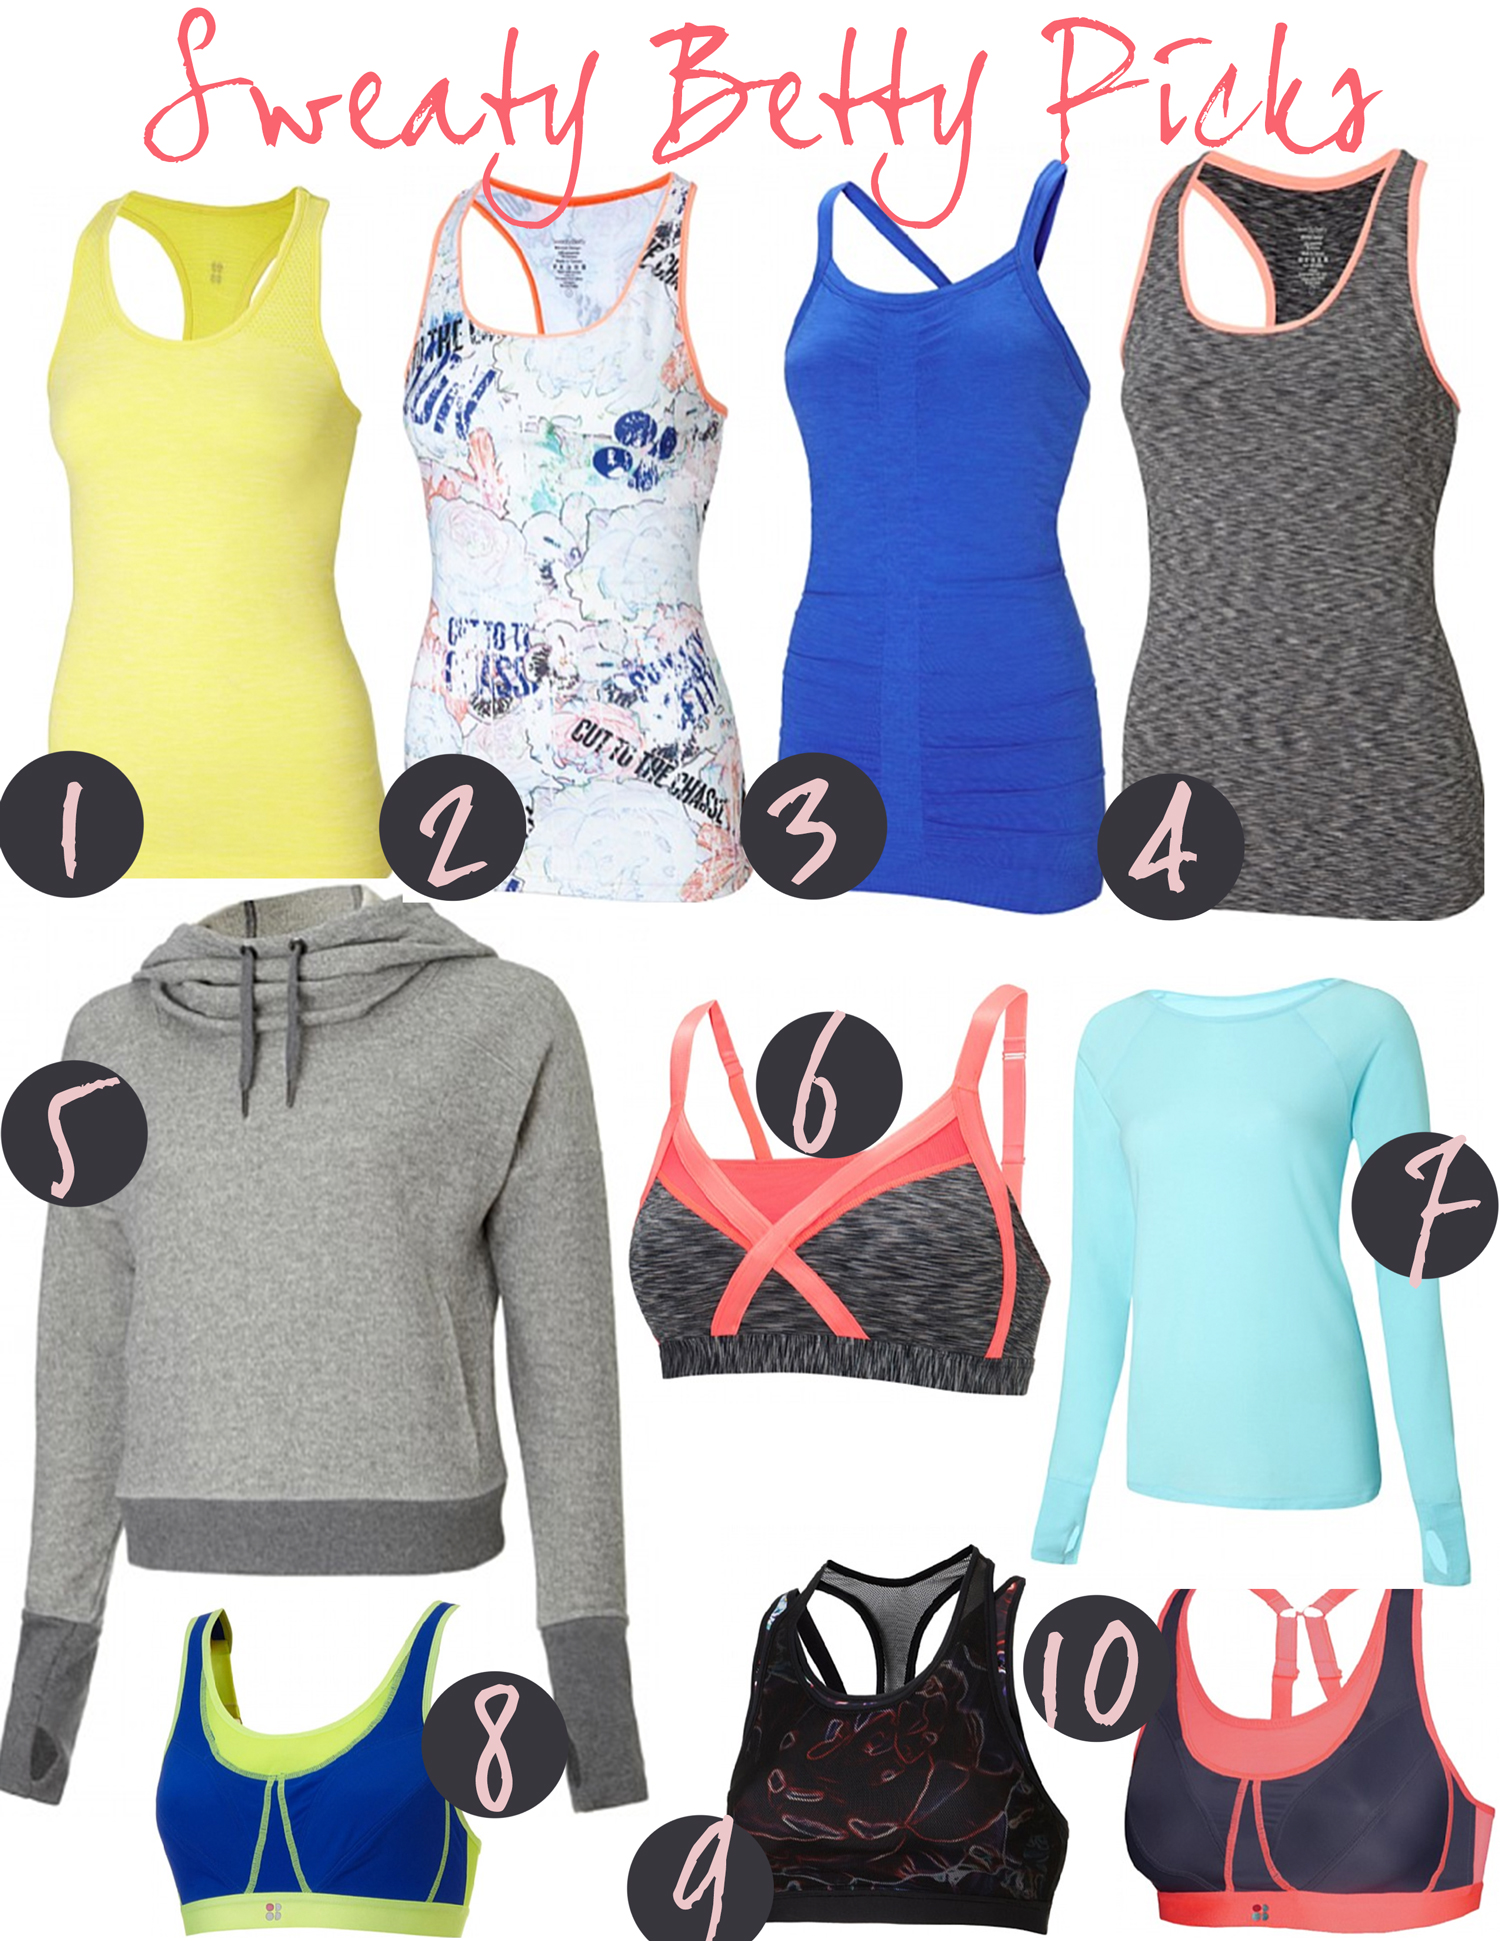 Sweaty Betty picks